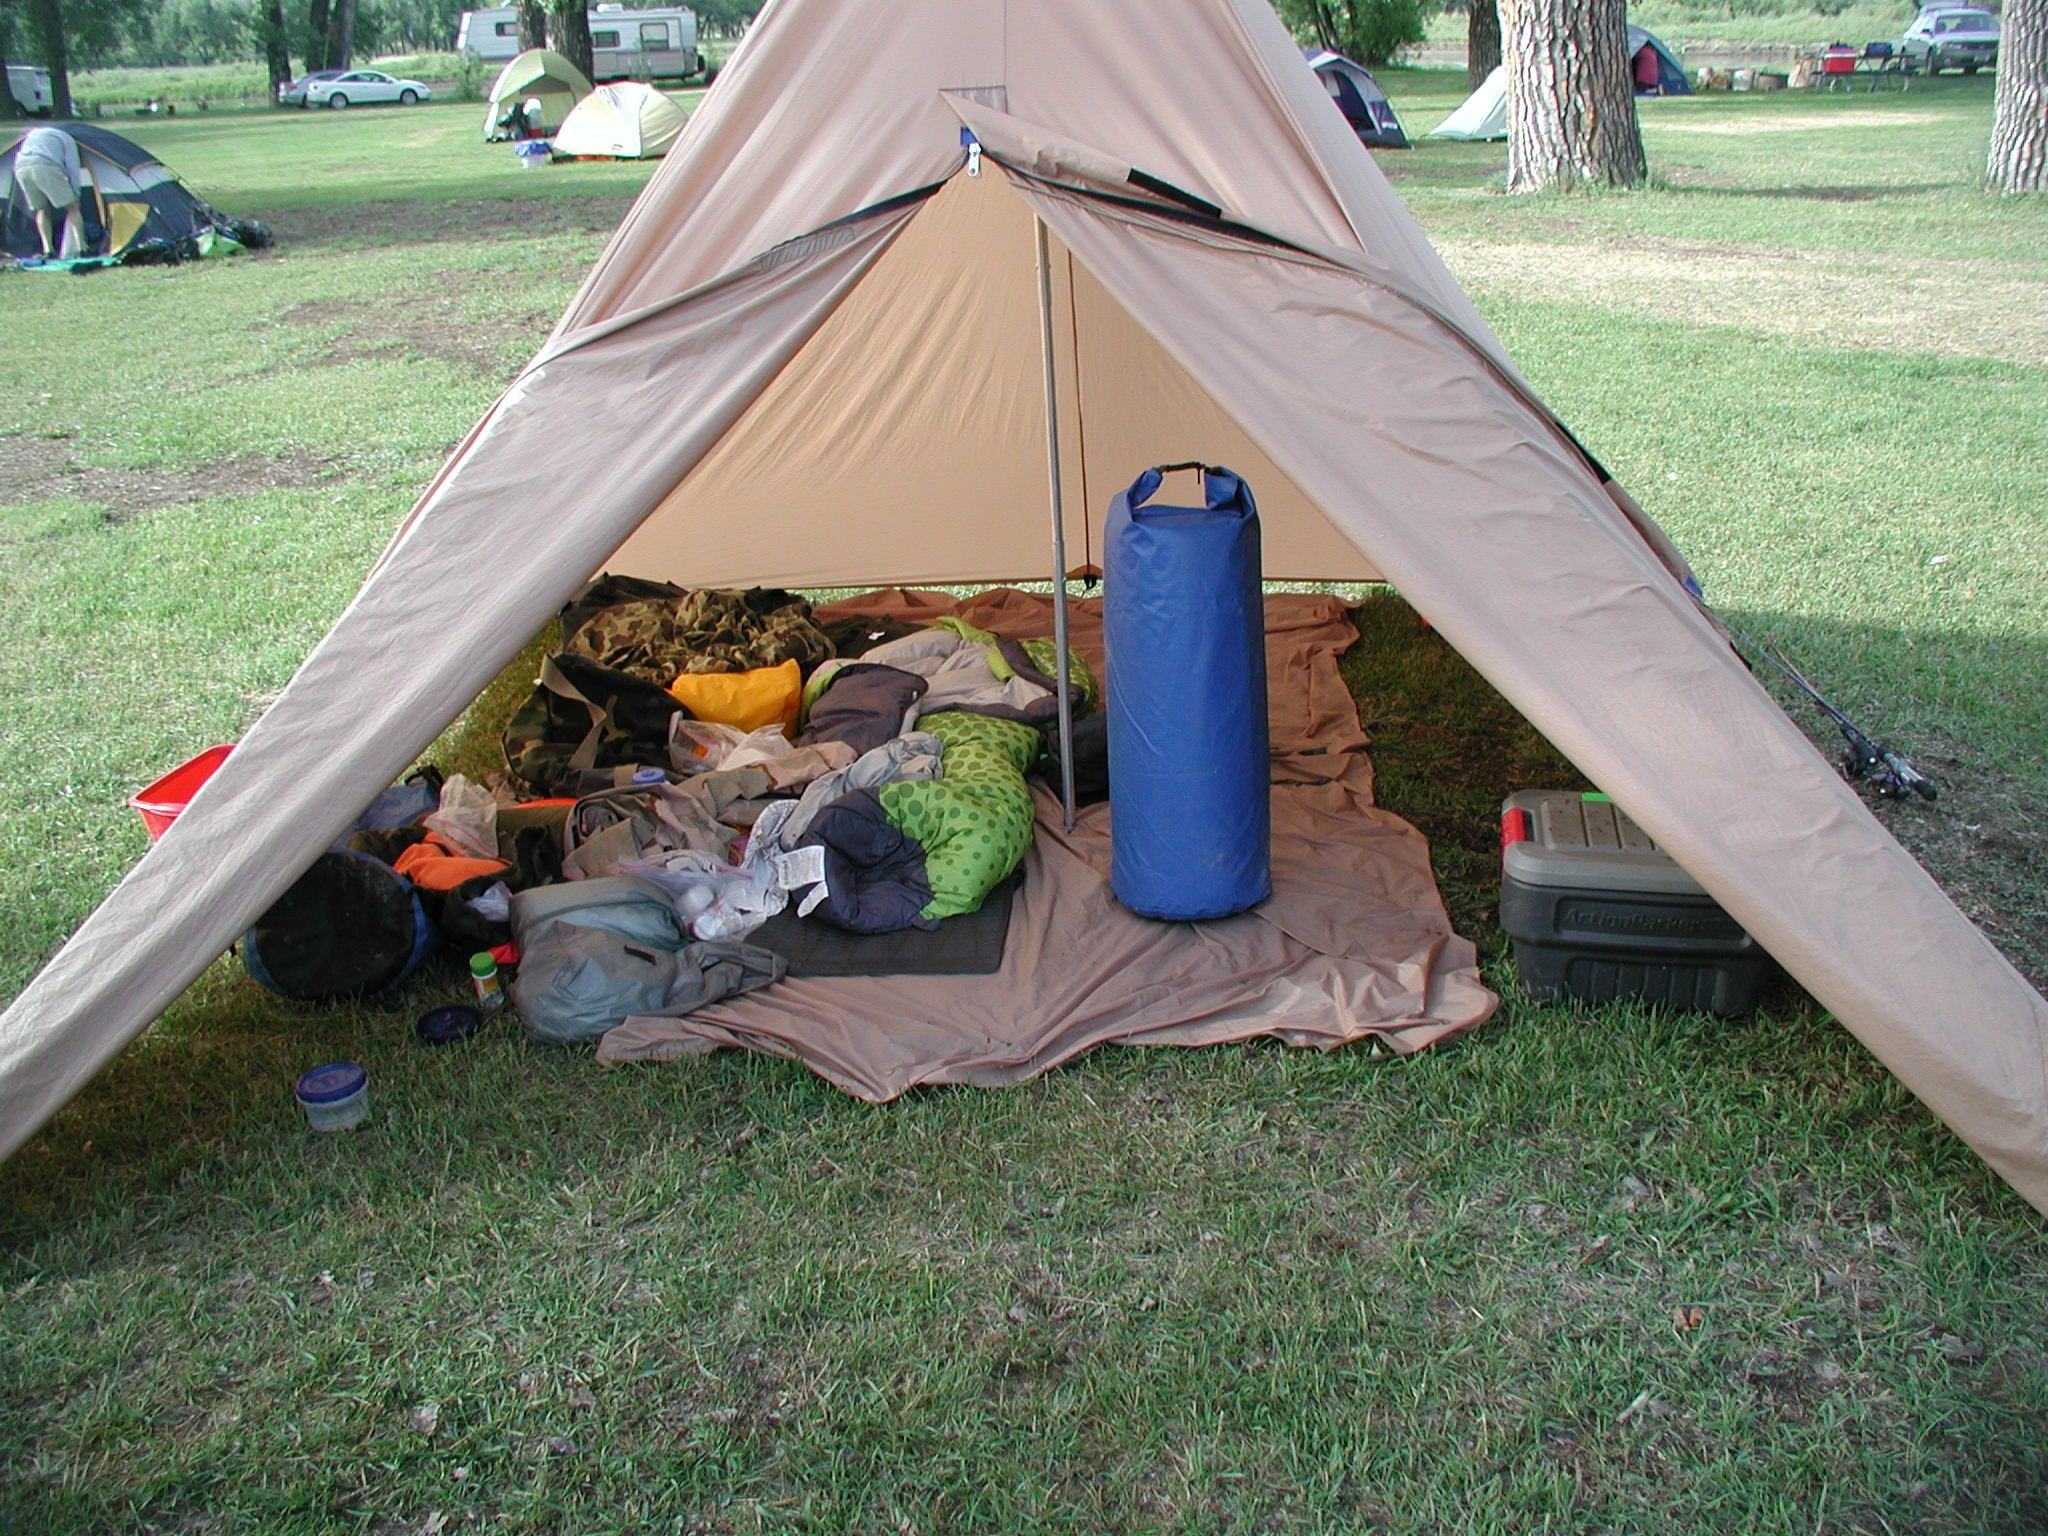 Which side of the tent belongs to the camper ready to go?